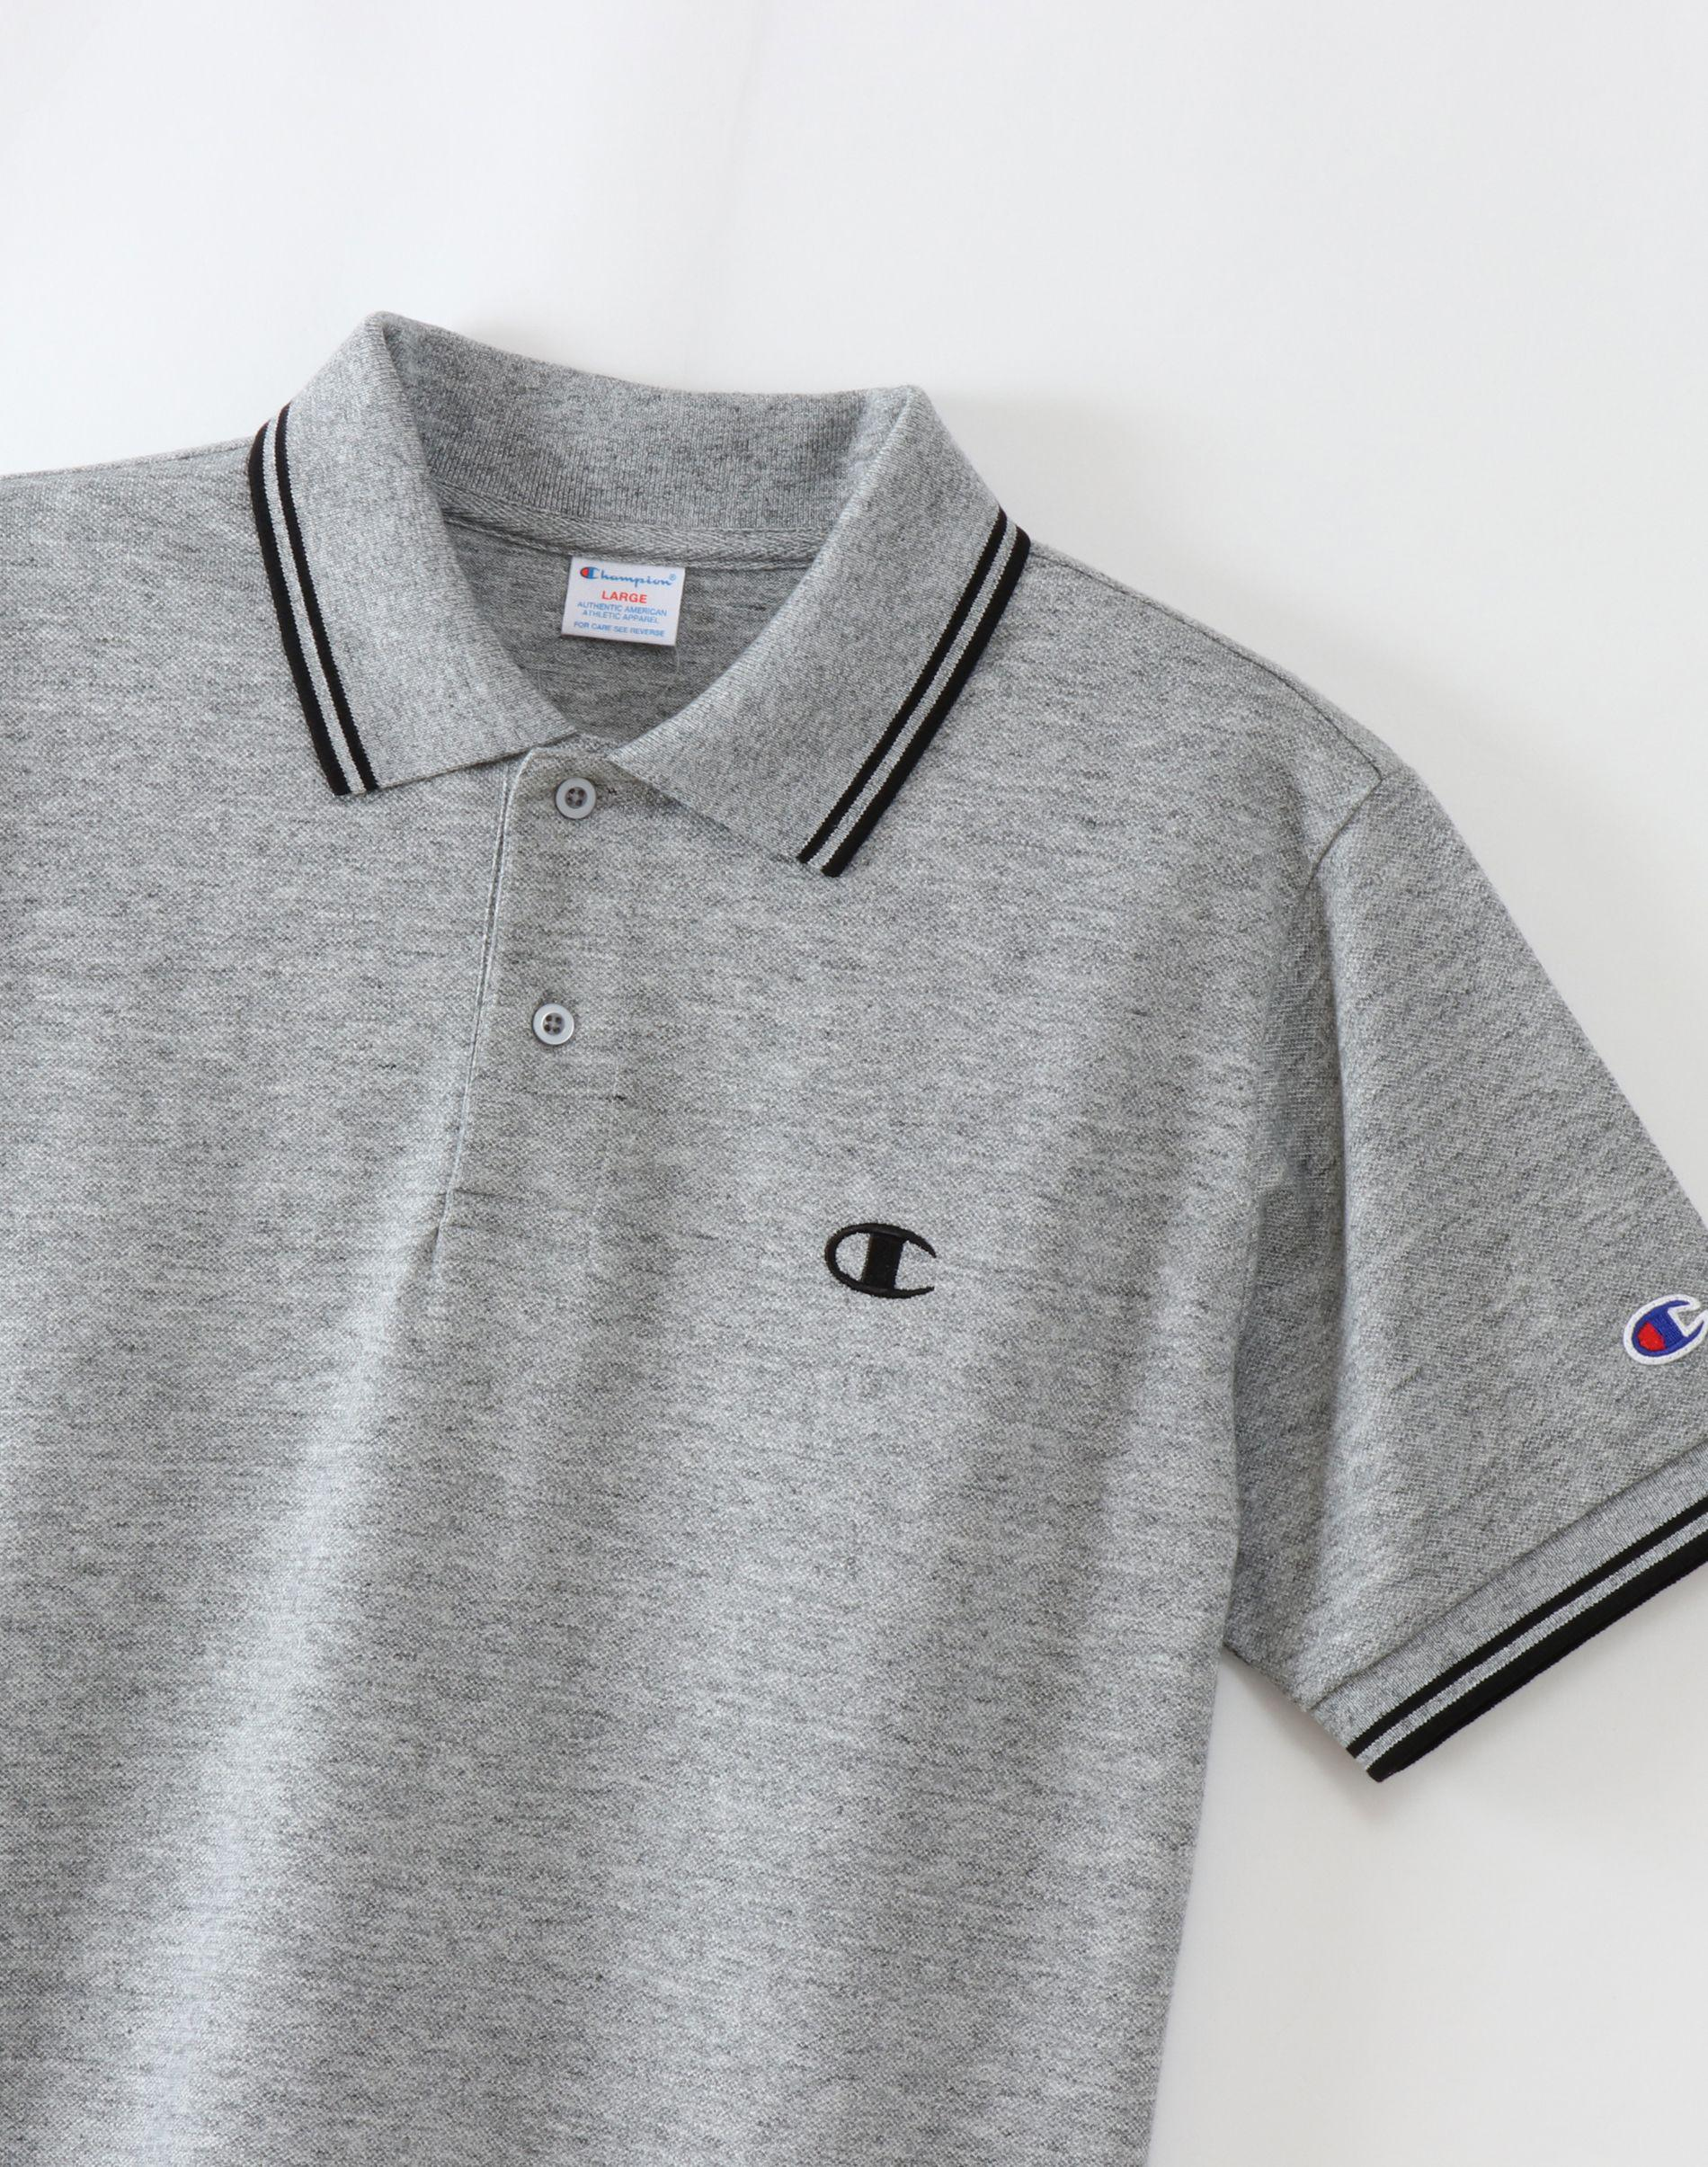 a7a1ffc7 Champion Japan Premium Campus Polo Shirt in White for Men - Lyst